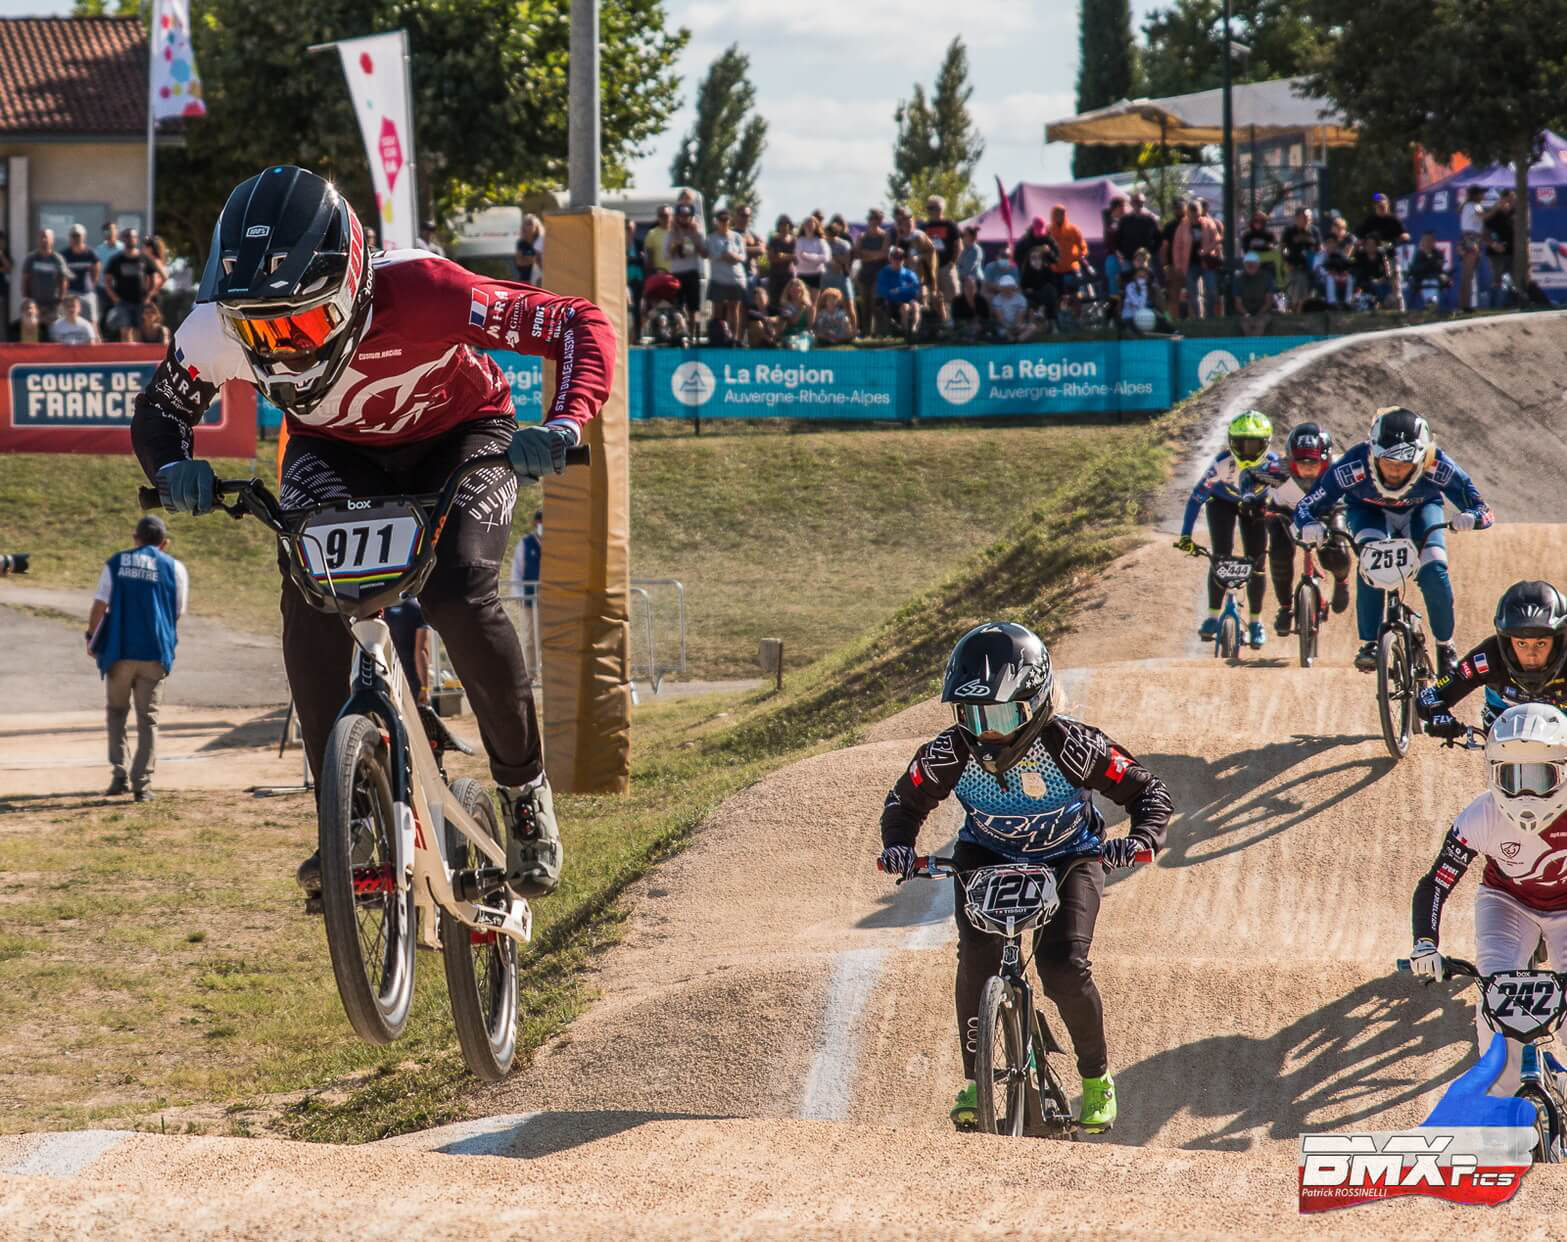 2021 French Cup Mours - BmxPics.fr - 004